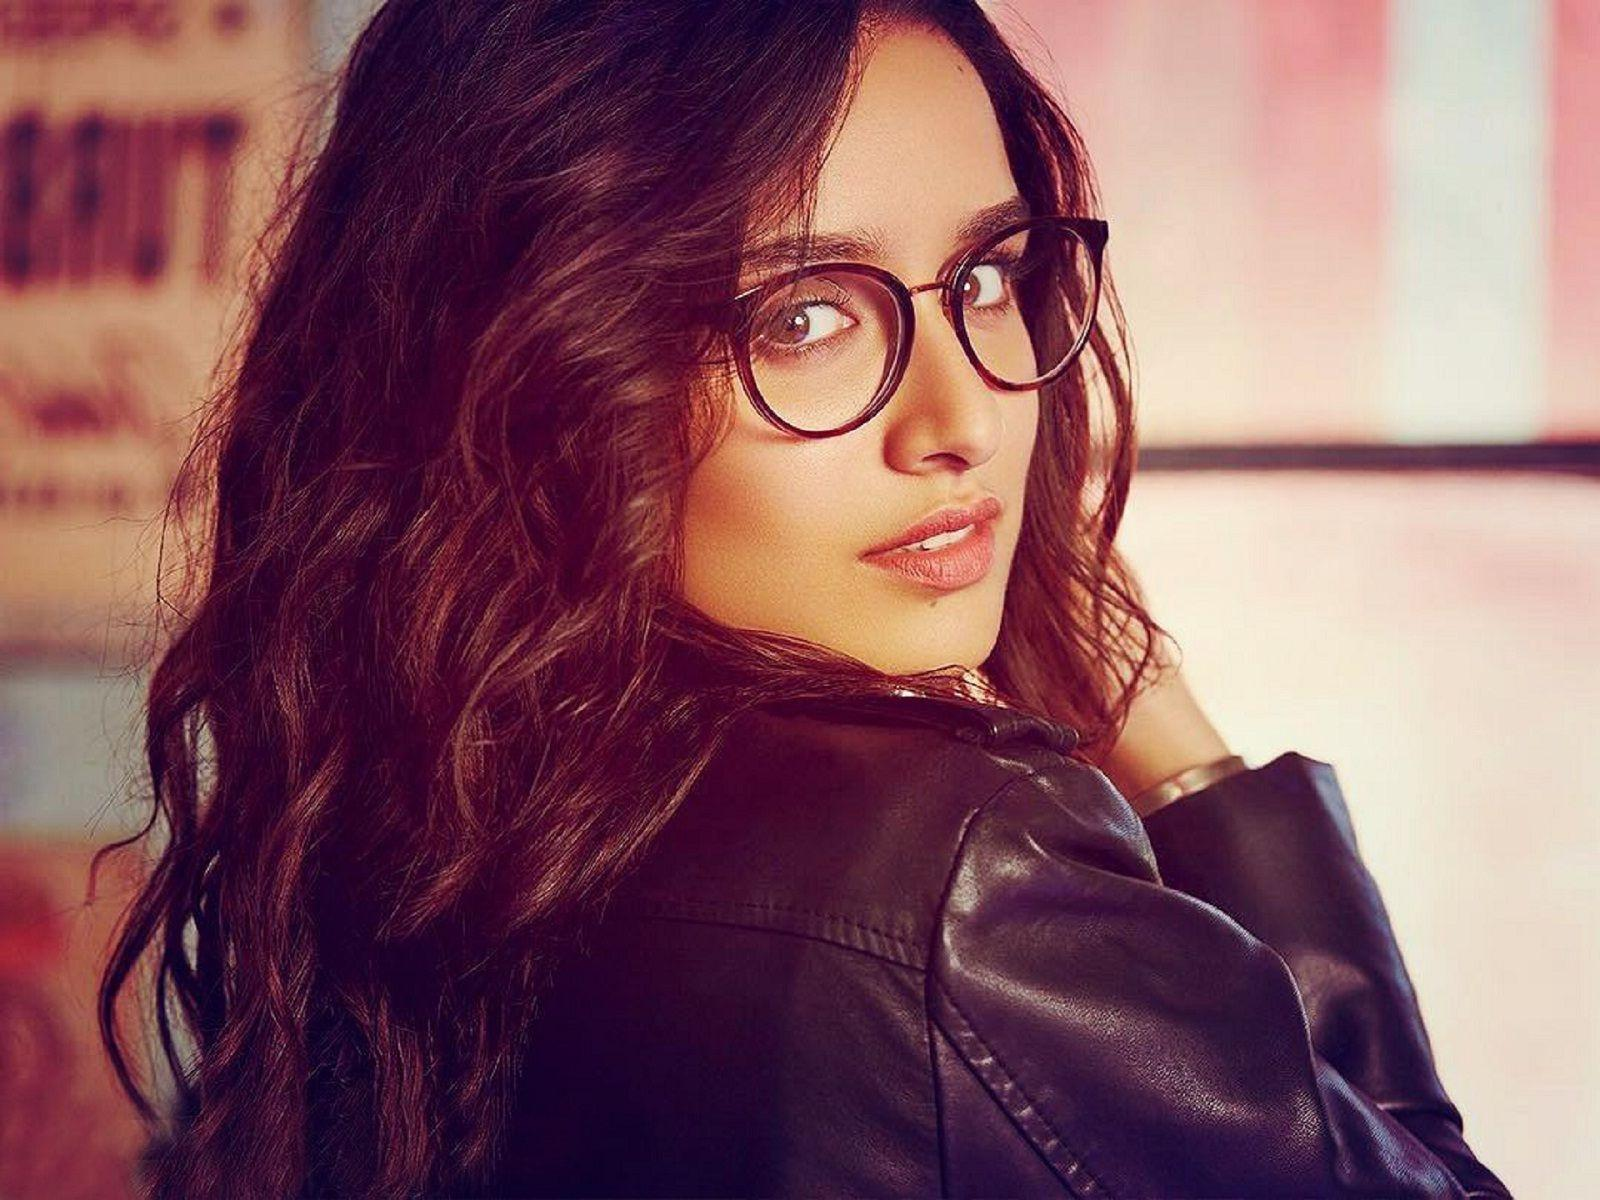 shraddha_kapoor_wallpaper_97338037